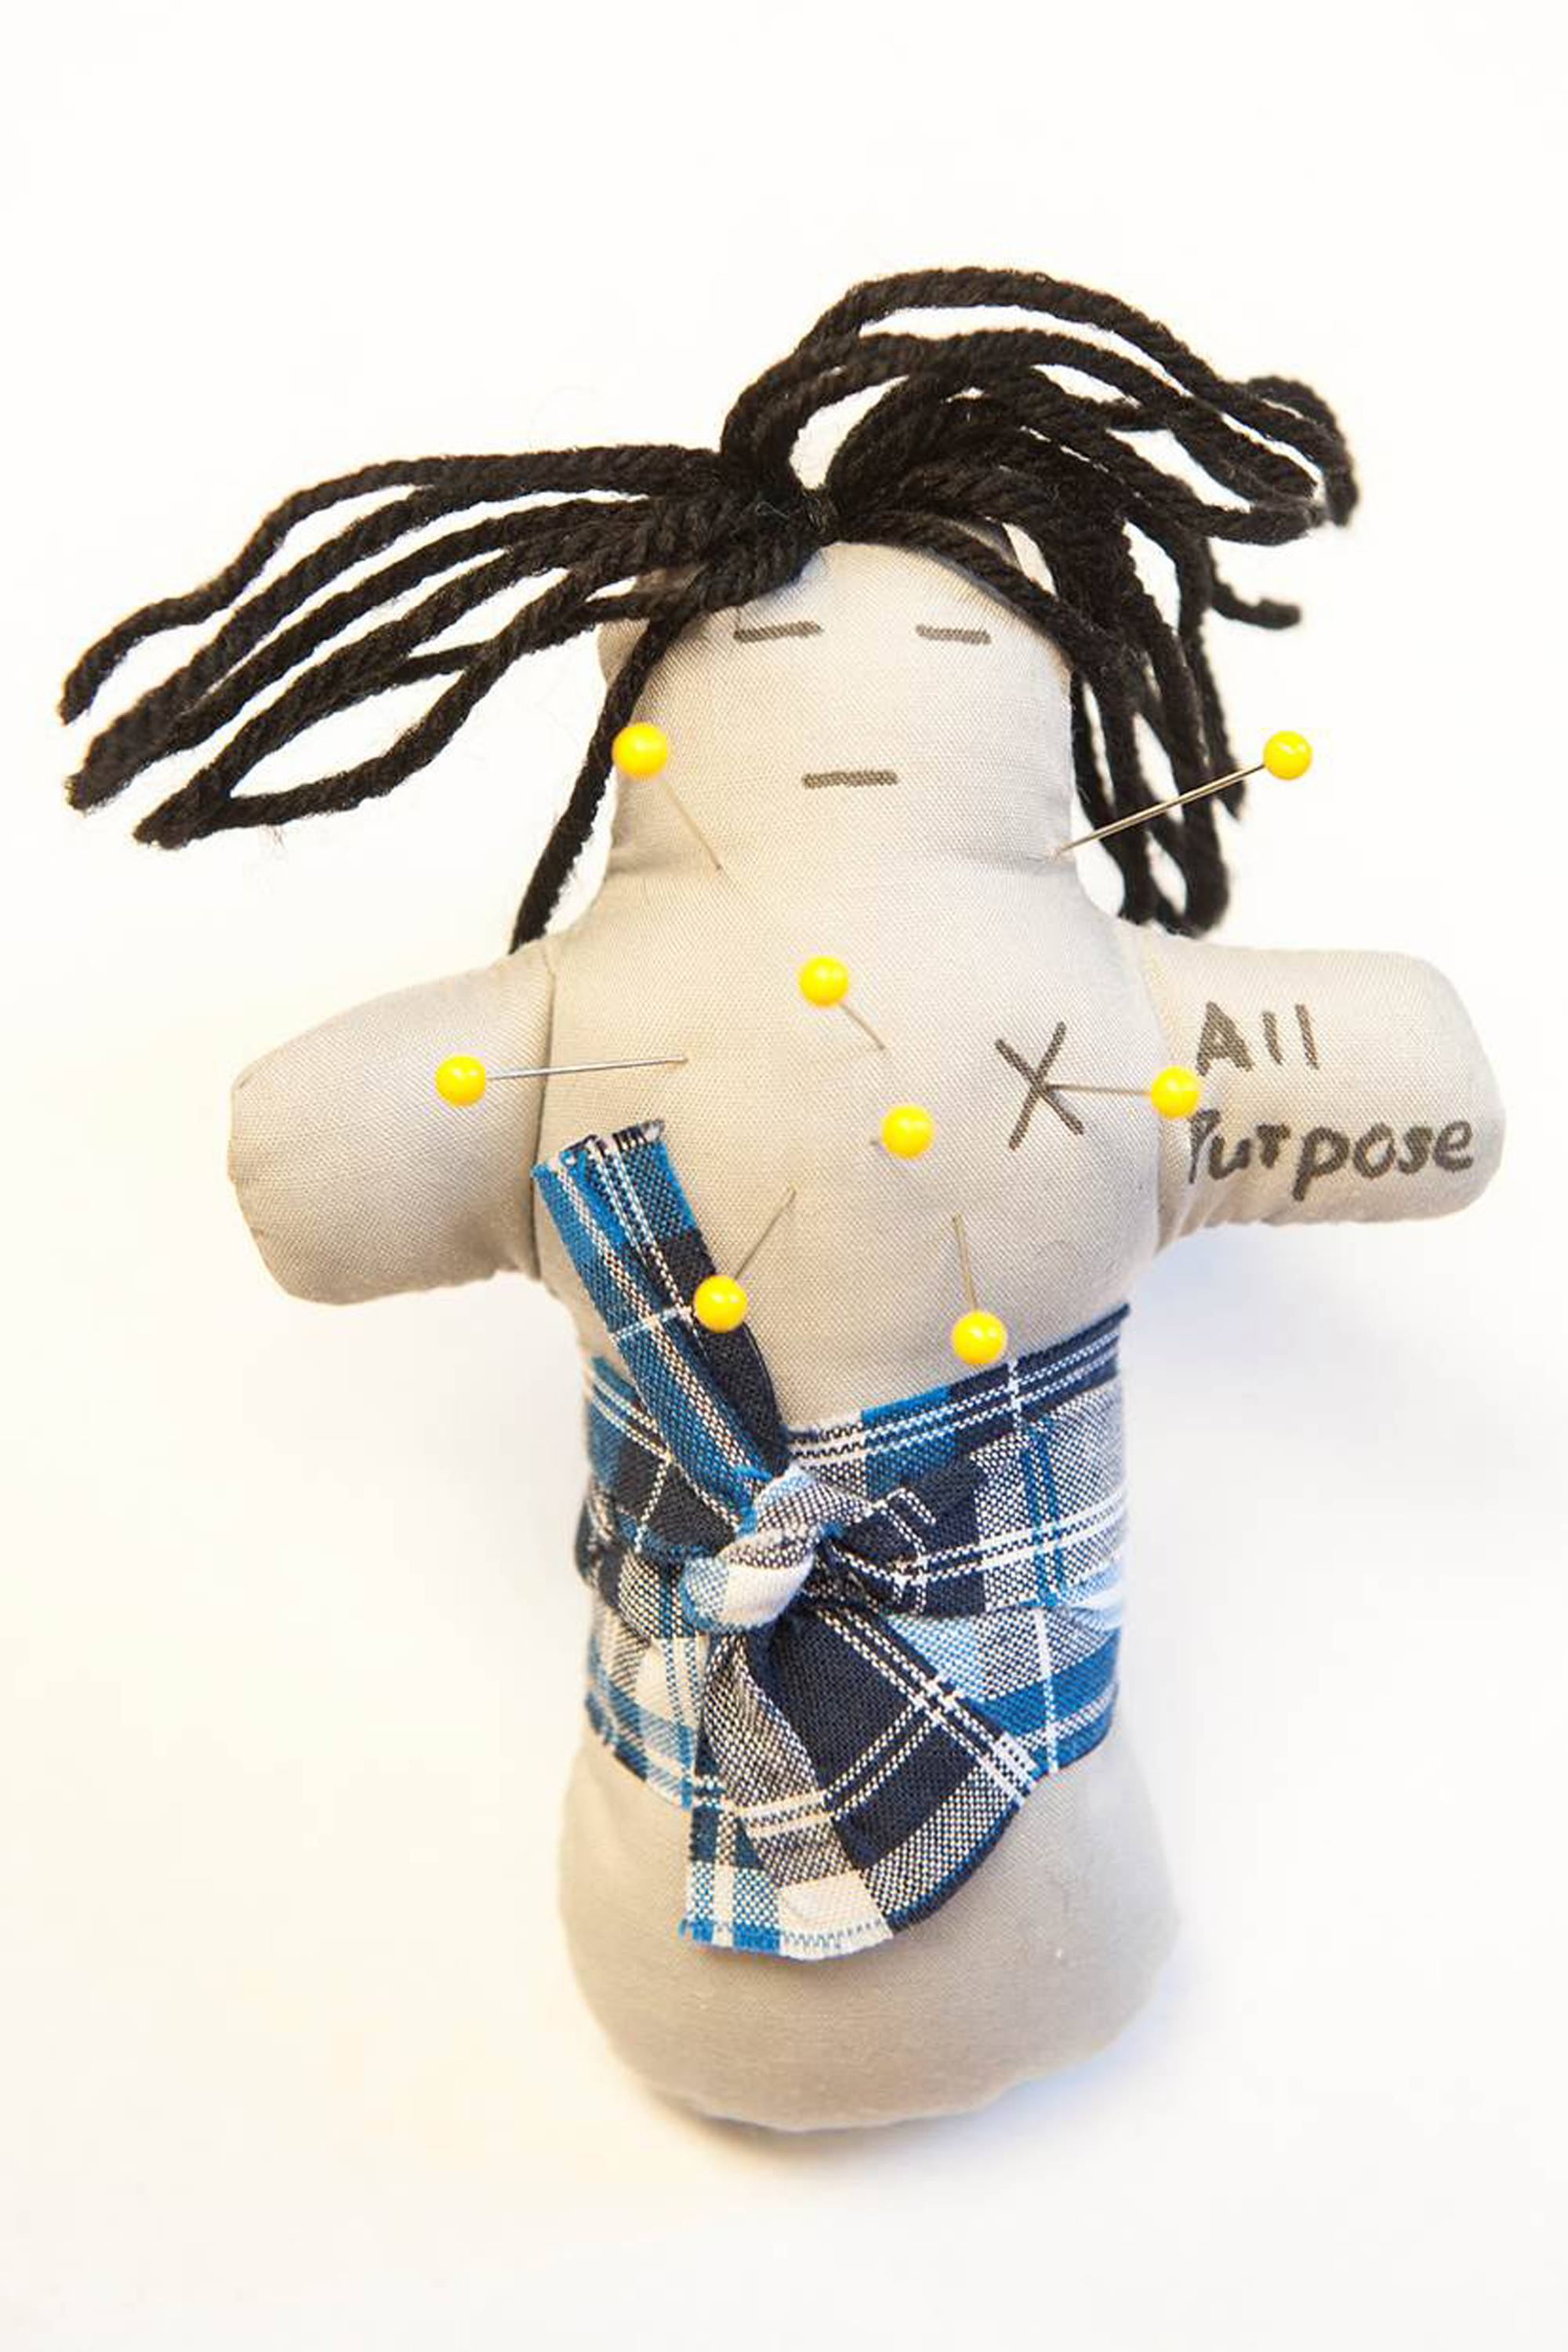 You may not need this all-purpose voodoo doll if you down a quick candy bar to prevent a fight with your spouse.